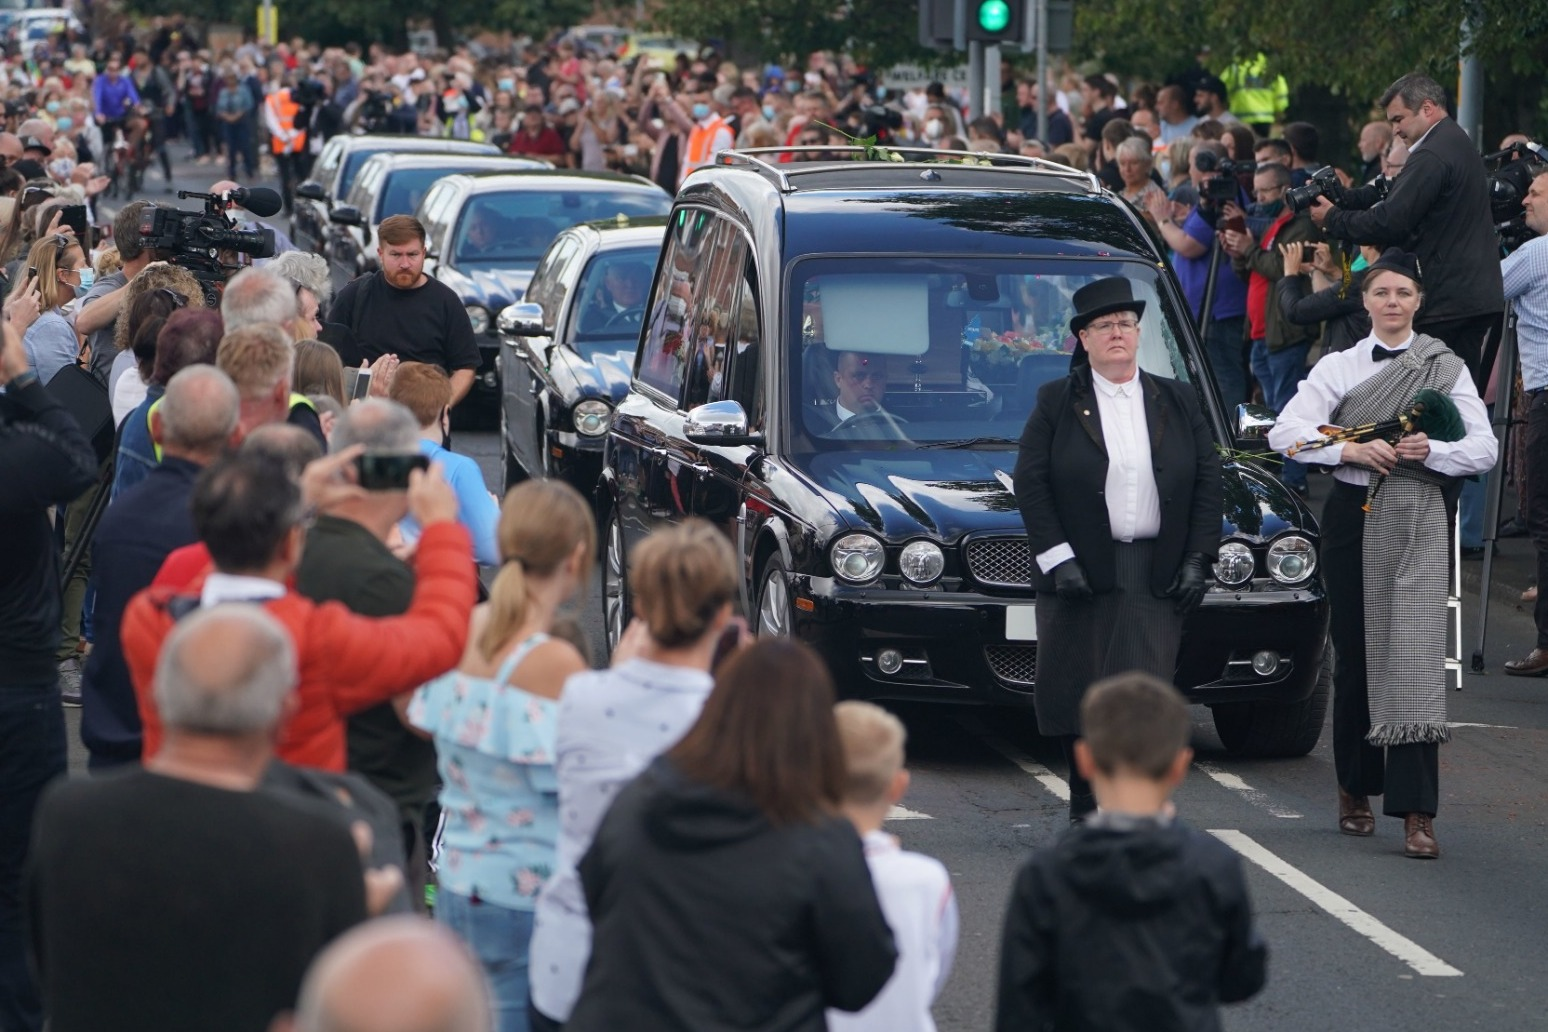 Funeral service held for Jack Charlton